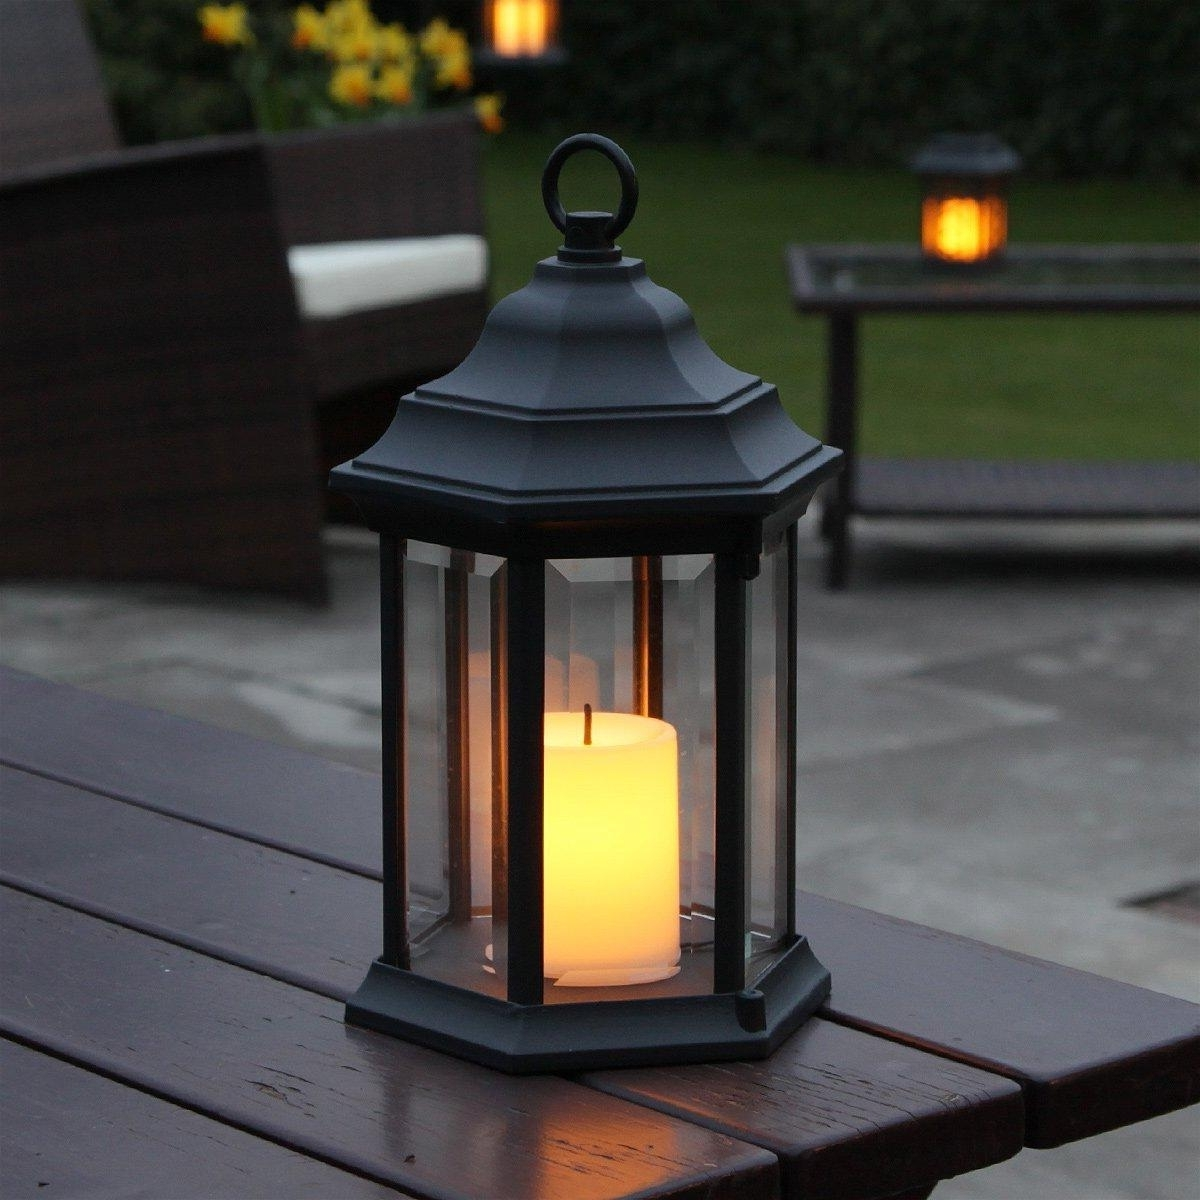 Outdoor Lanterns With Battery Operated Candles Intended For Well Liked Outdoor Lighting For Sale – Outdoor Lights Prices, Brands & Review (View 16 of 20)